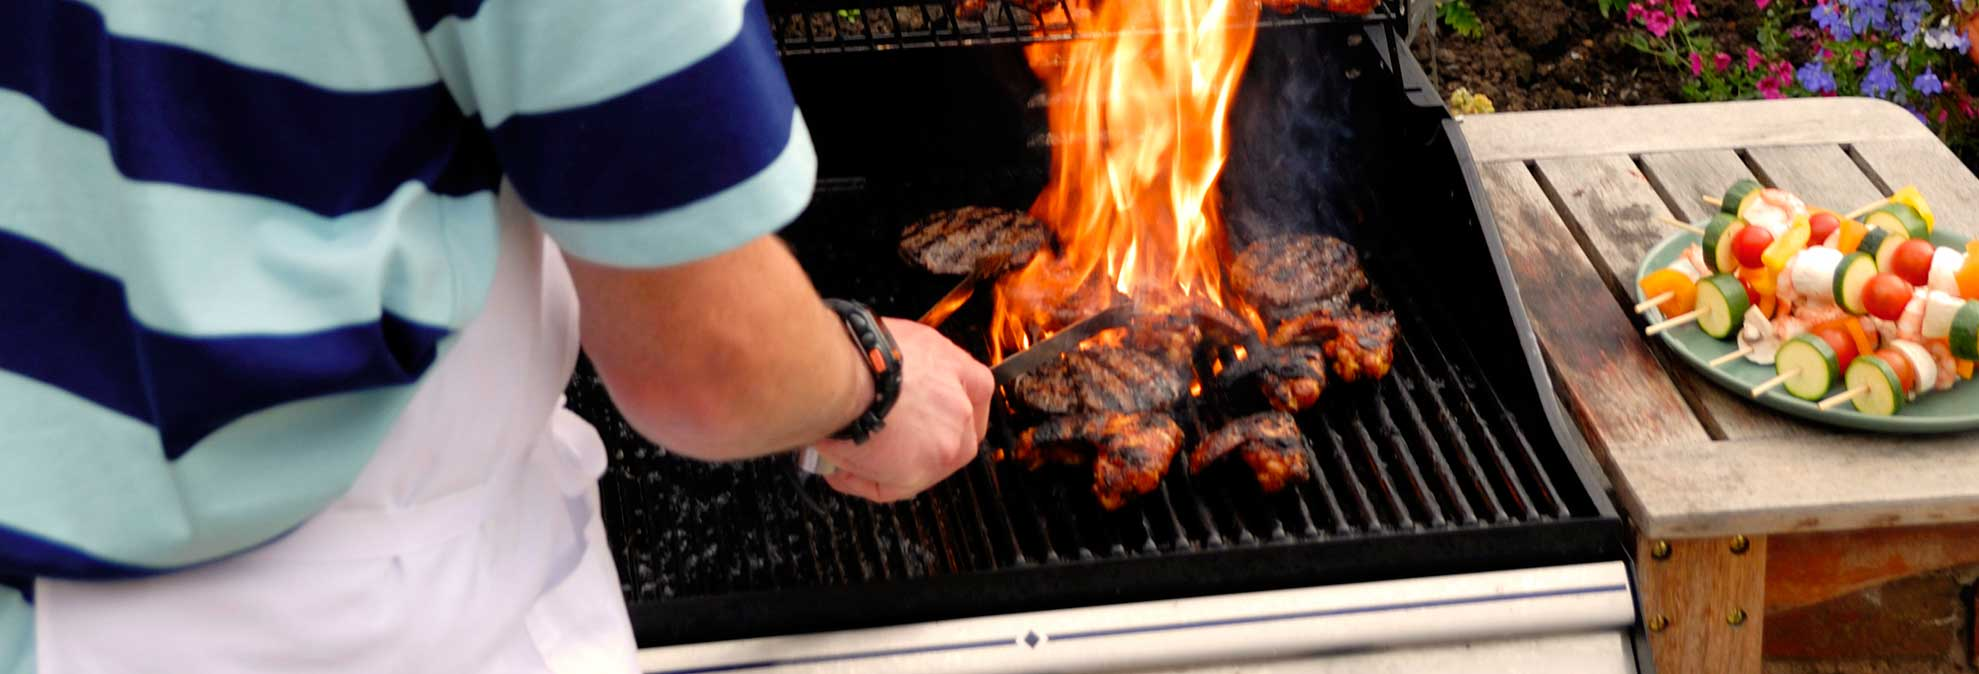 how to treat a burn from grilling and cooking